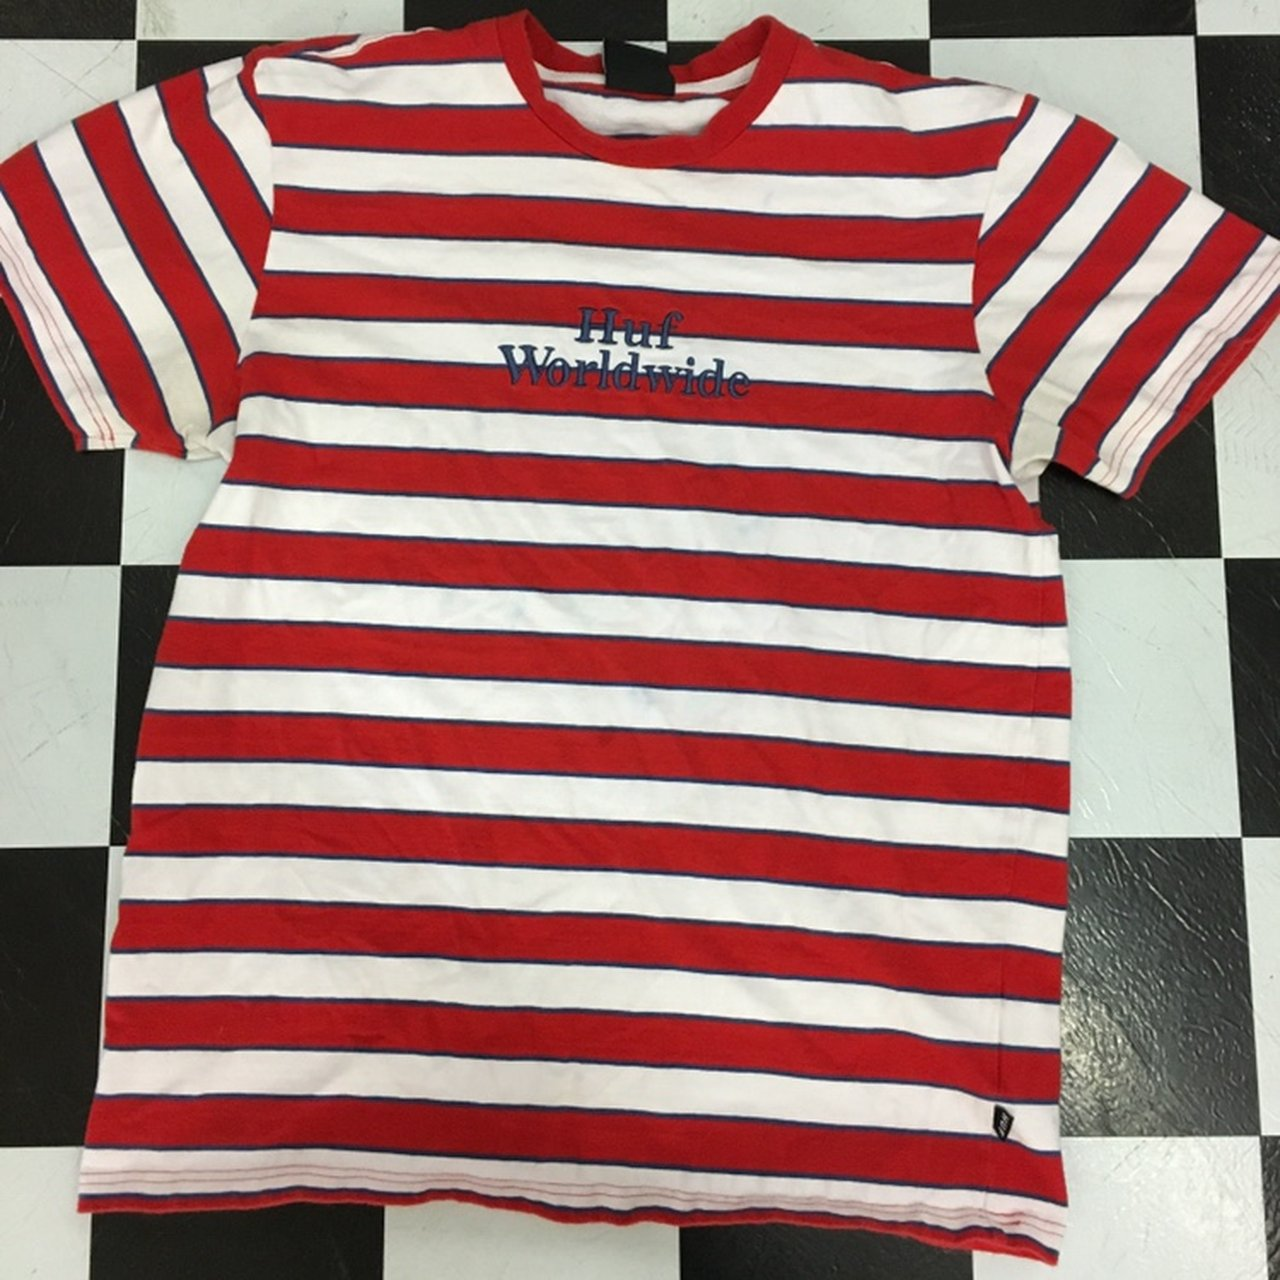 67b93c5845 Guess Jeans Red And White Striped Shirt